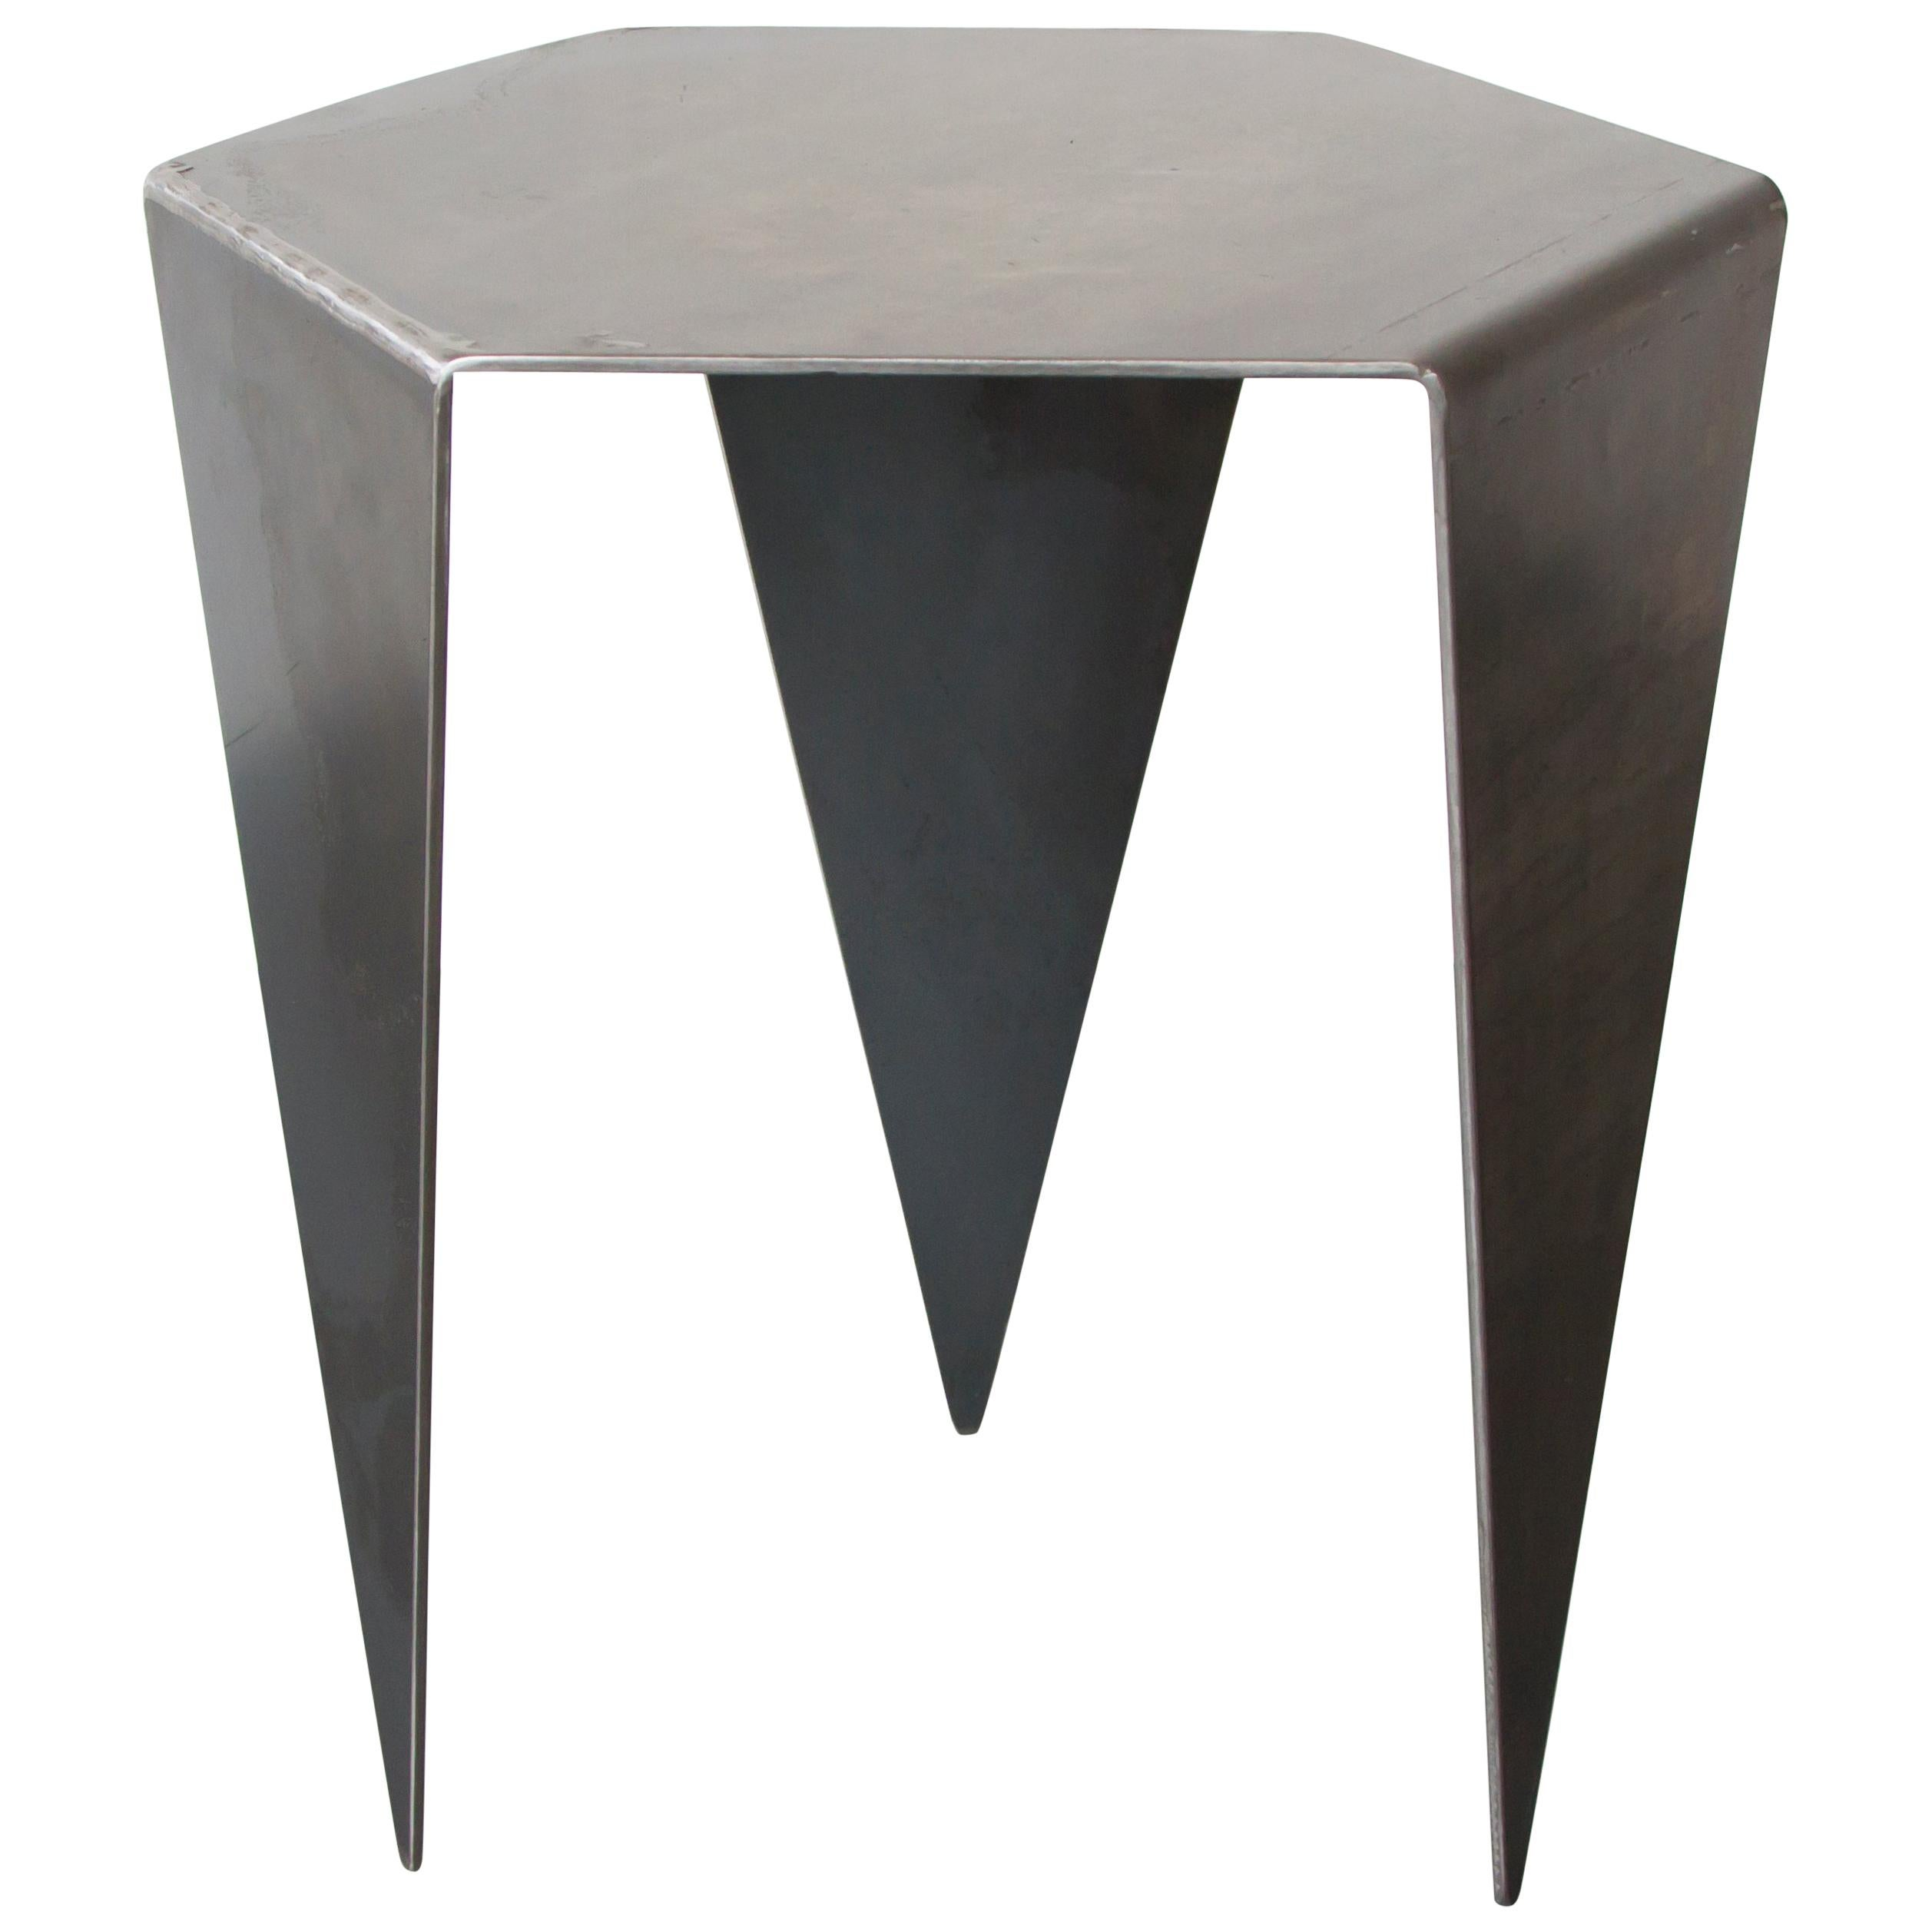 Hexagon Side Table in Raw Black Steel Minimalist Design by Mtharu